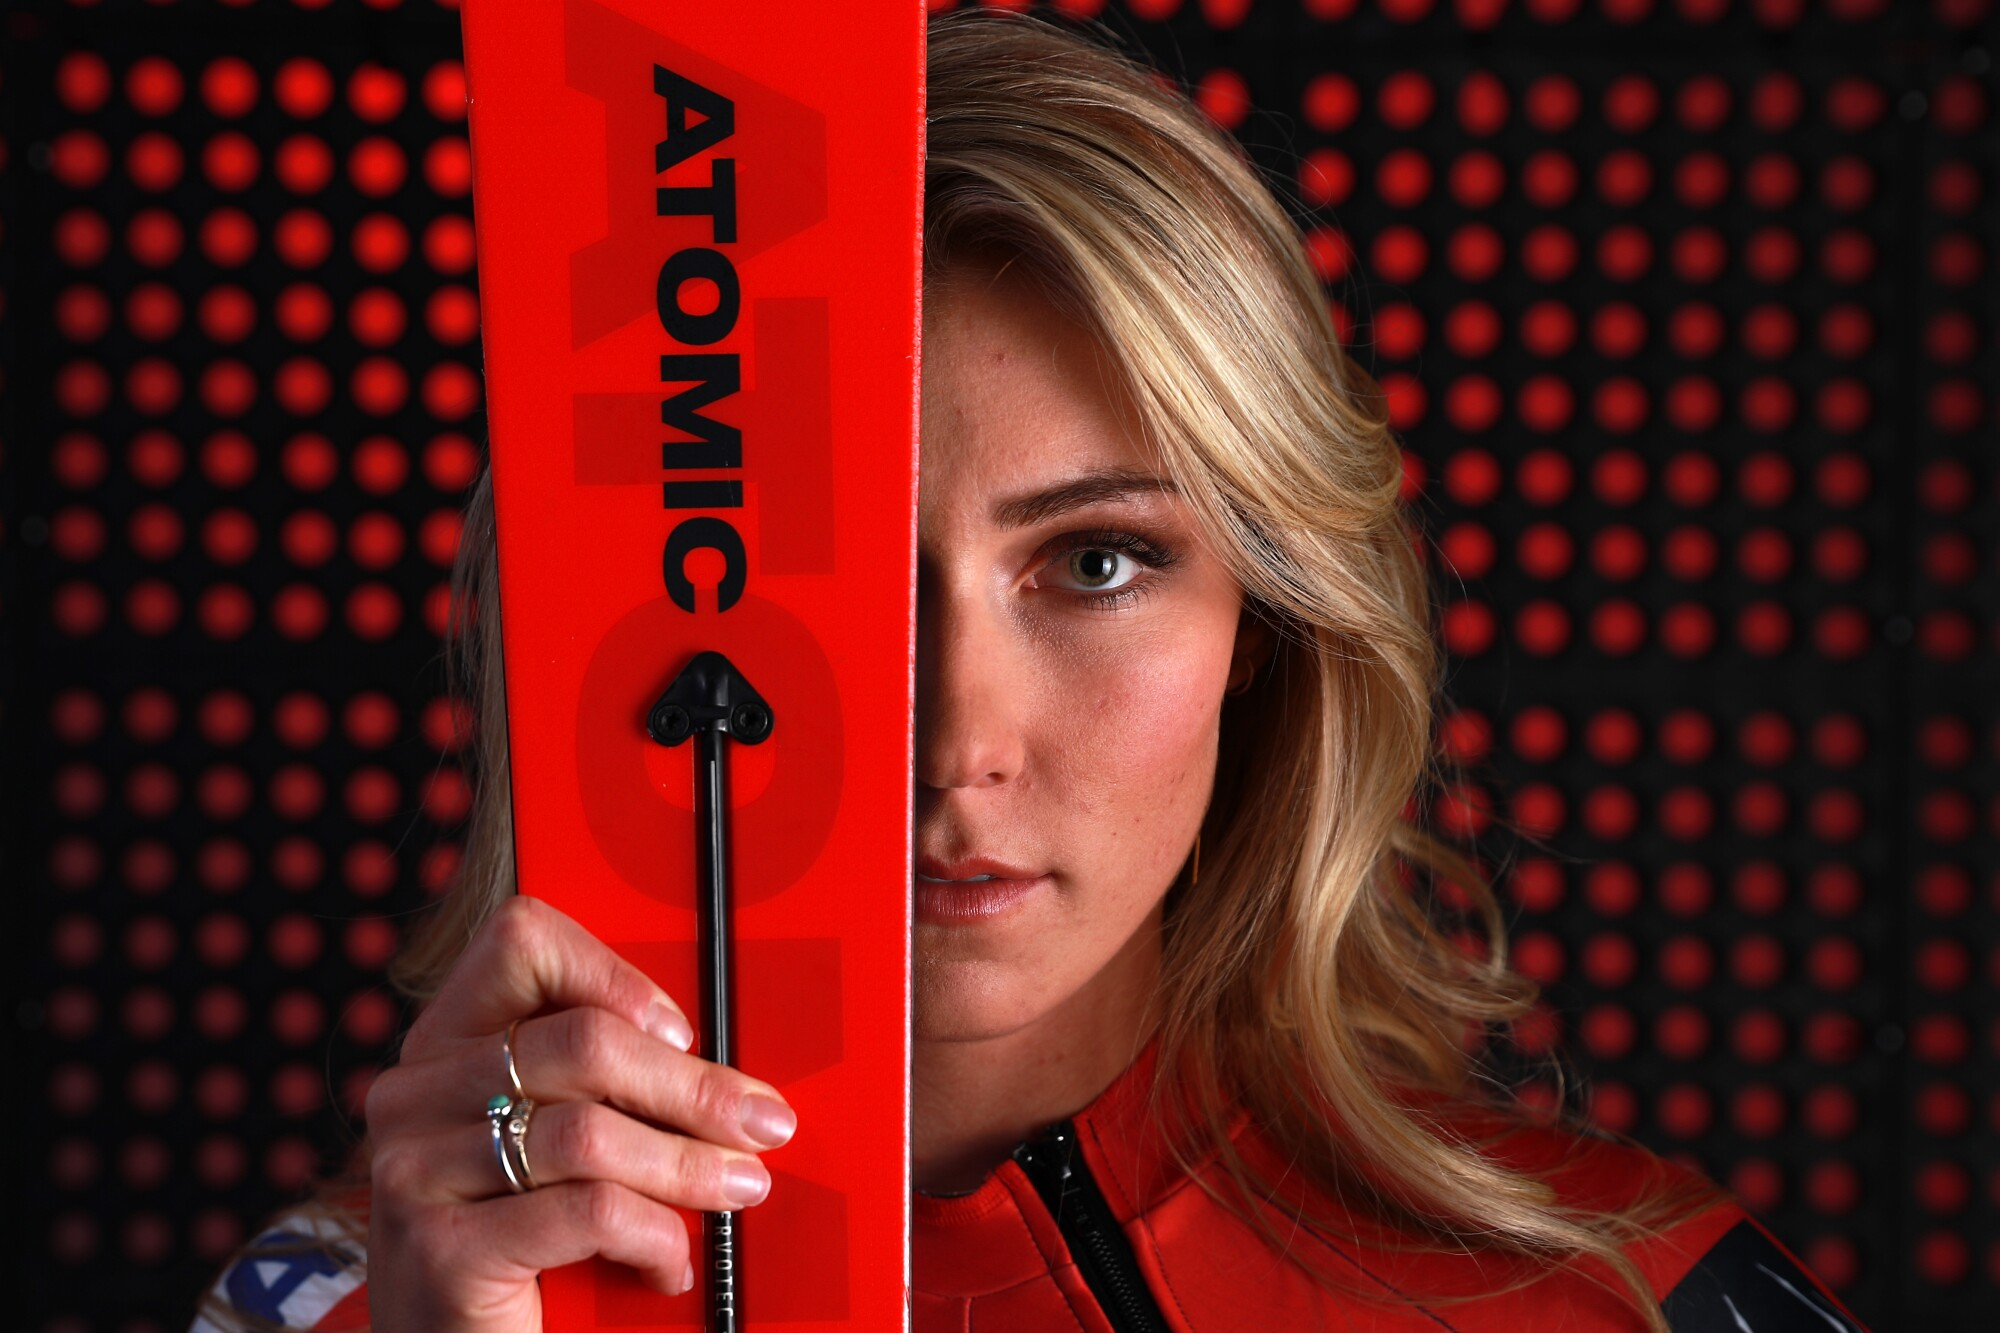 Alpine skier Mikaela Shiffrin poses for a portrait during the Team USA Media Summit ahead of the PyeongChang 2018 Olympic Winter Games on September 25, 2017 in Park City, Utah.